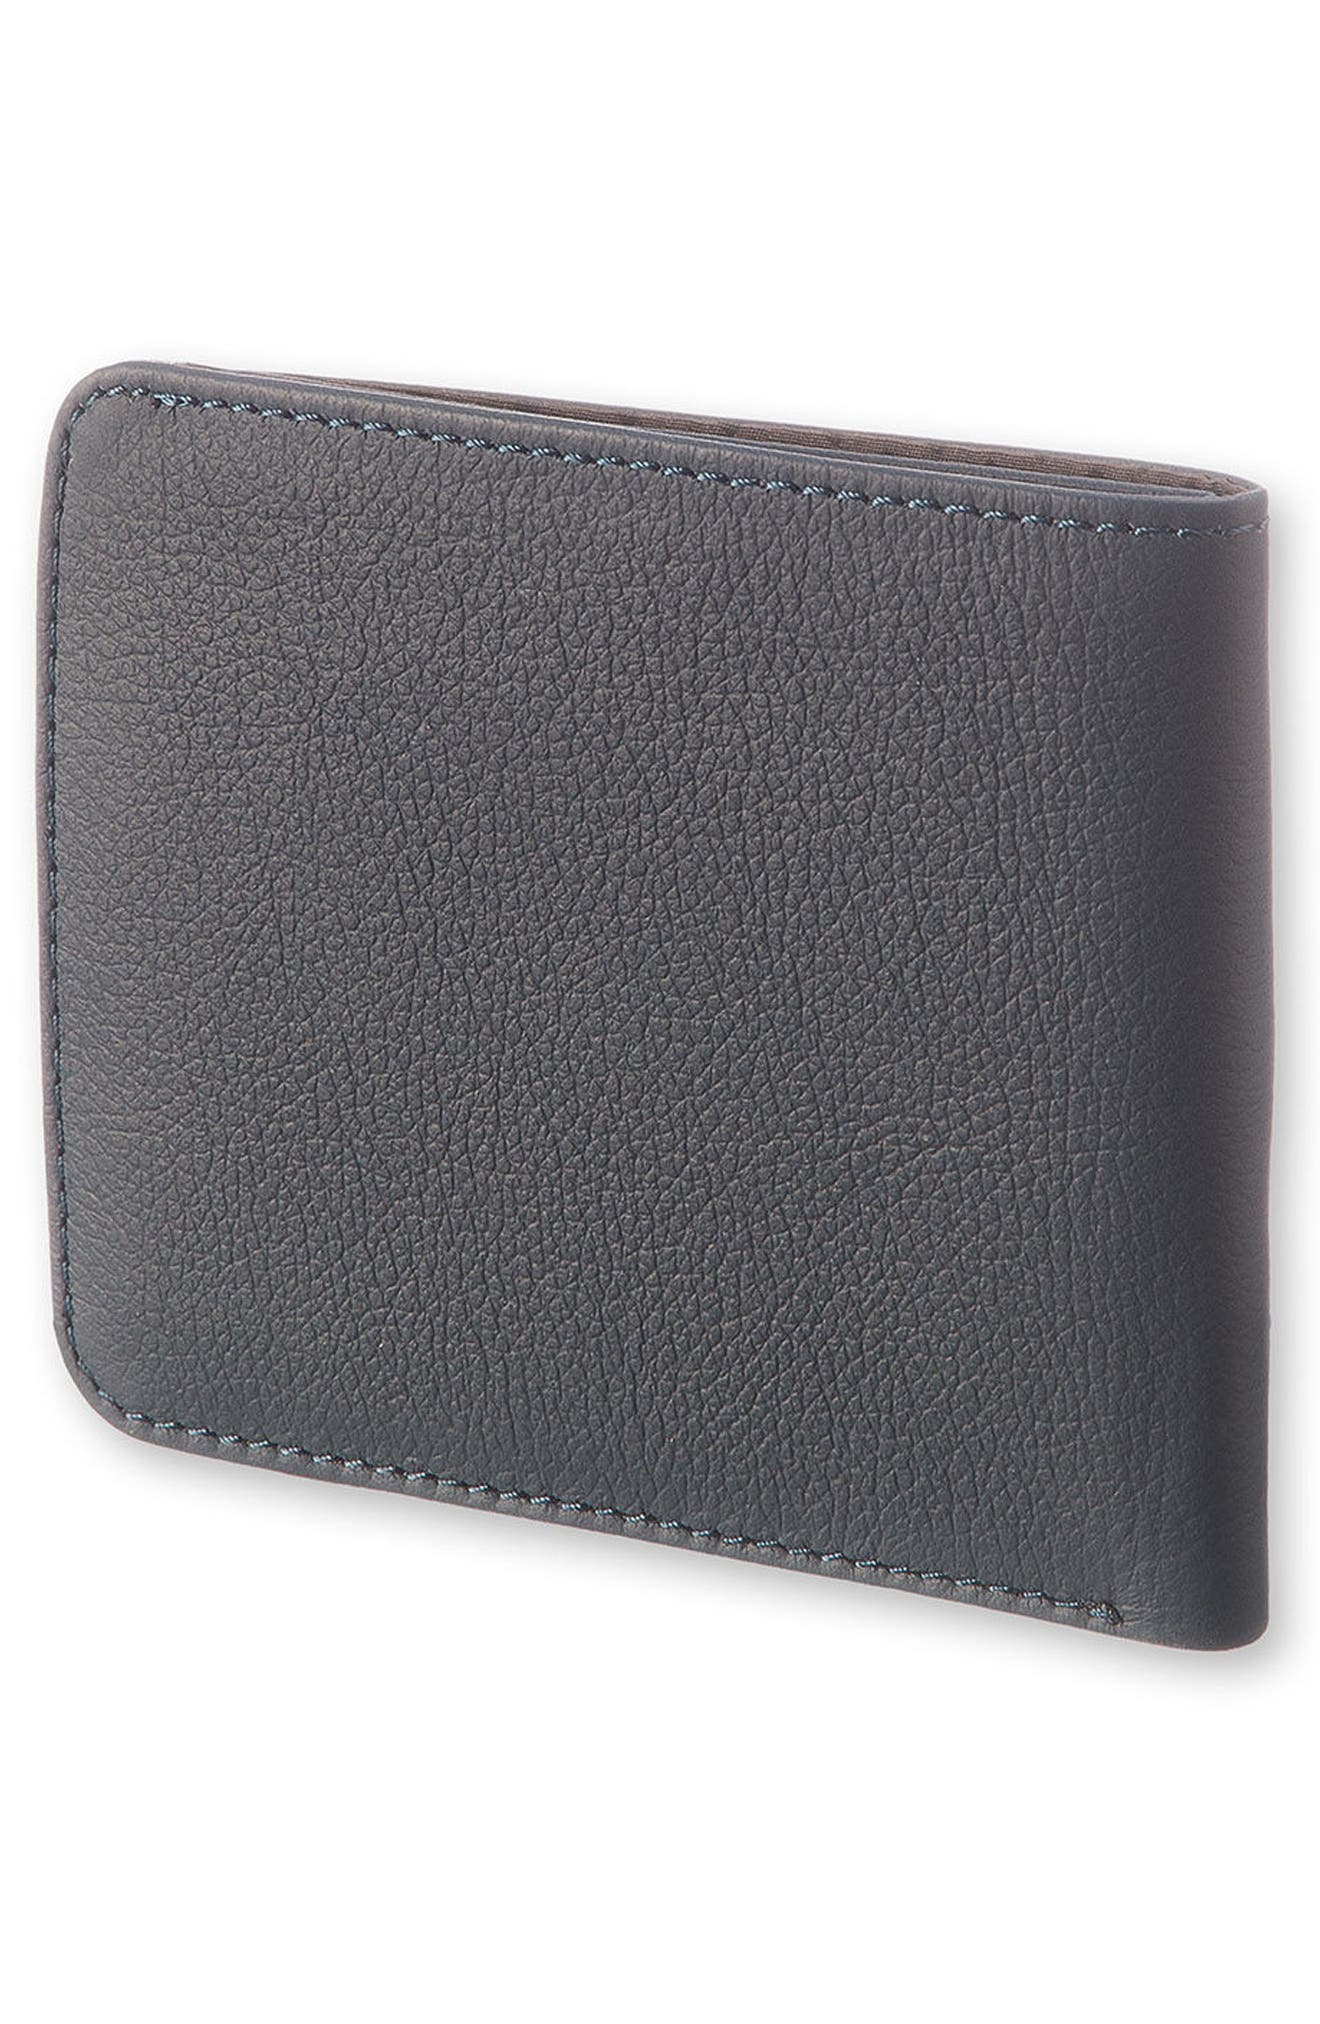 Lineage Leather Wallet,                             Alternate thumbnail 3, color,                             Avio Blue